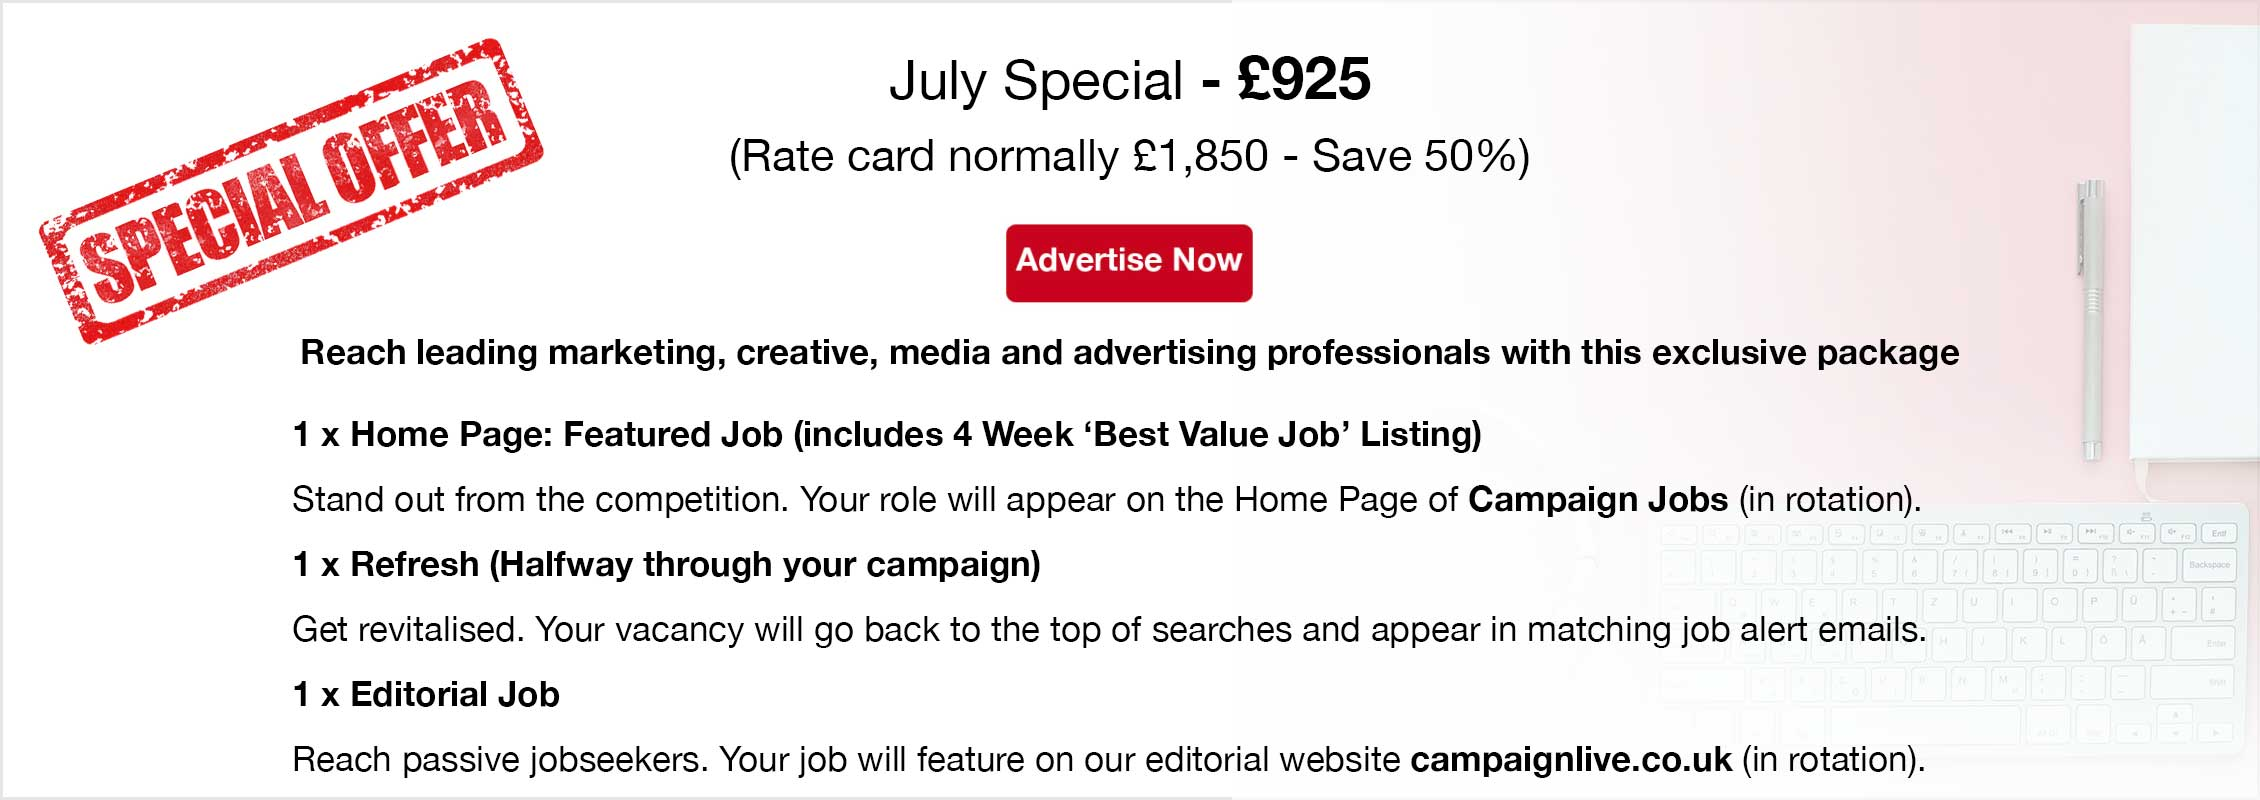 Special Offer. July Special - £925 (Rate card normally £1,850 - Save 50%). Advertise Now. Reach leading marketing, creative, media and advertising professionals with this exclusive package. 1 x Home Page: Featured Job (4 Week Listing) Stand out from the competition. Your role will appear on the Home Page of Campaign Jobs (in rotation).  1 x Refresh (Halfway through your campaign)  Get revitalised. Your job will go back to the top of searches and appear in matching job alert emails.  1 x Editorial Job  Reach passive jobseekers. Your vacancy will feature on our editorial website campaignlive.co.uk (in rotation).